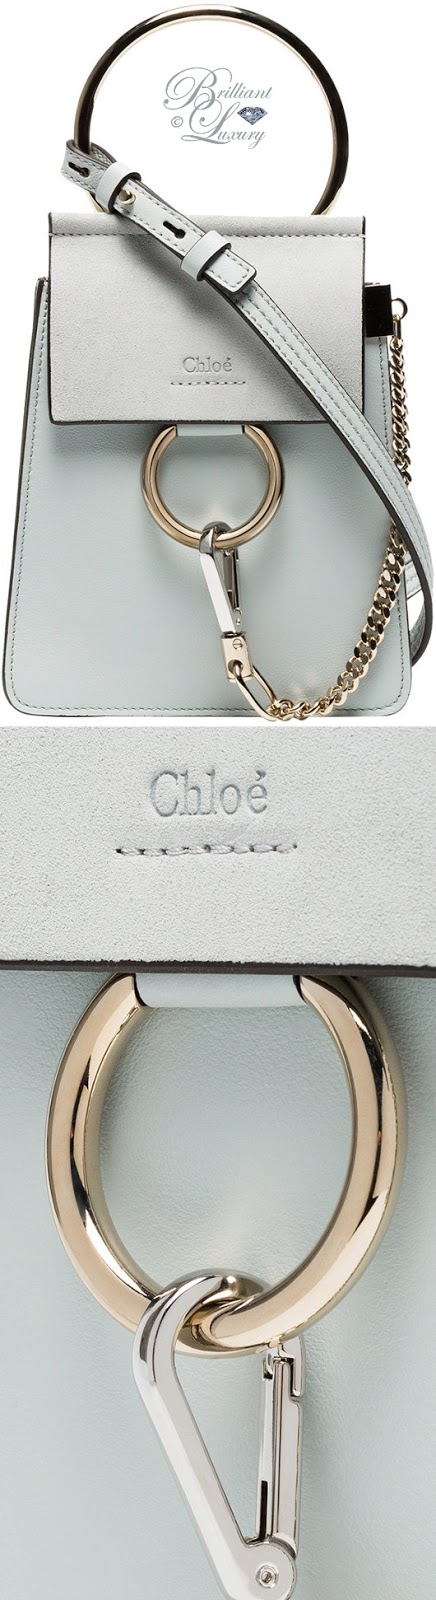 Brilliant Luxury ♦ Chloé Faye mini blue leather bracelet bag